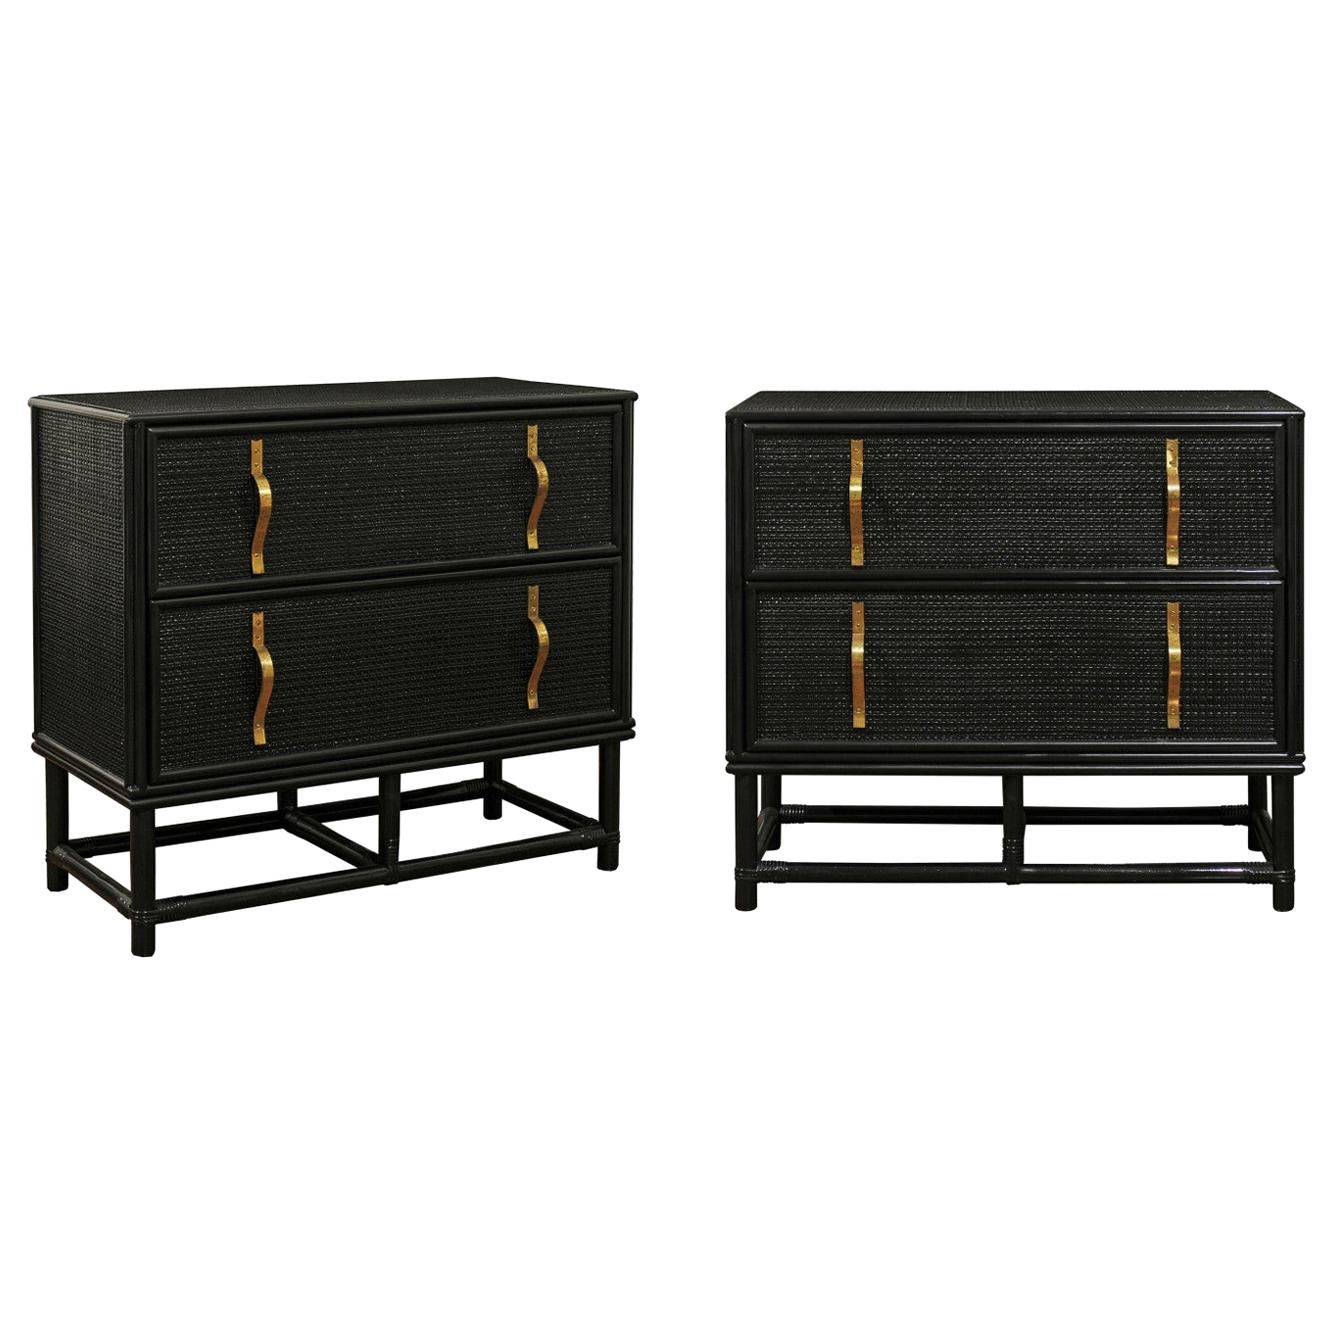 Elegant Pair of Black Lacquer Cane and Brass Commodes by Tommi Parzinger